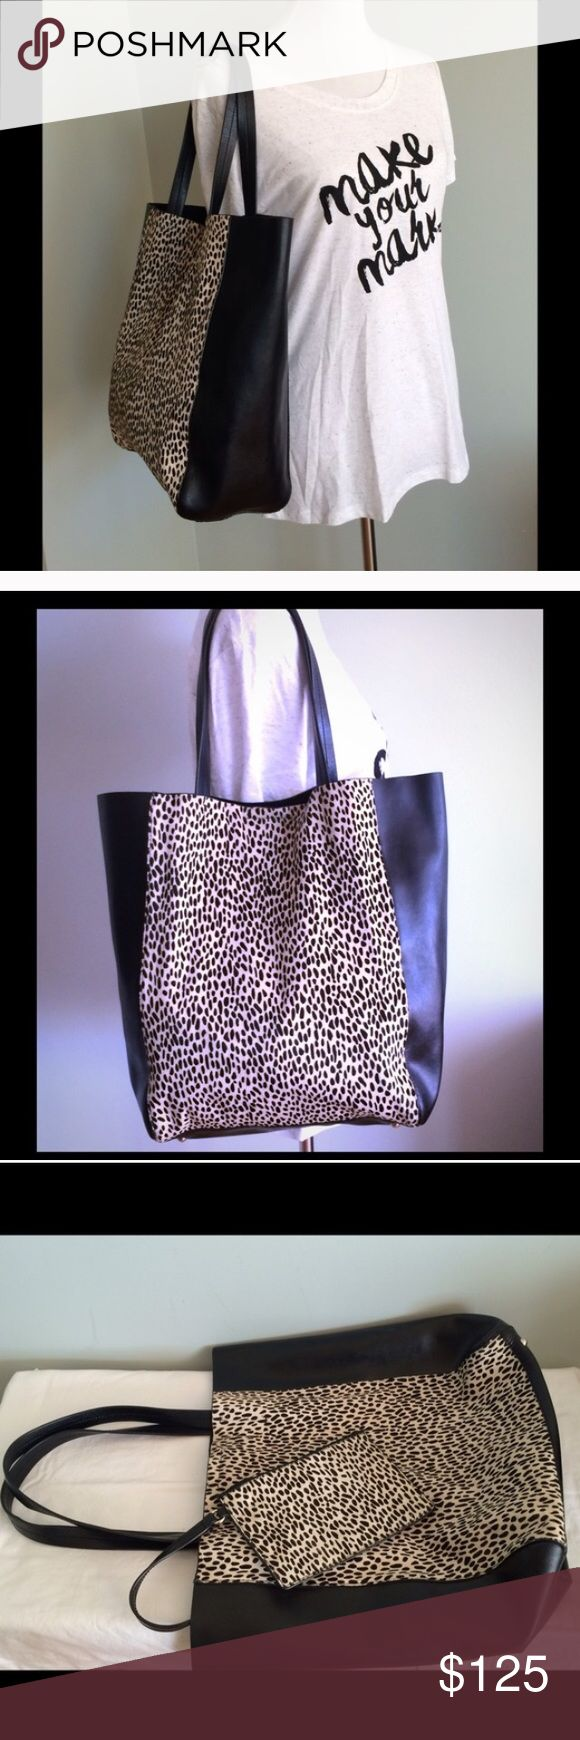 """Spotted Calf Hair Leather Banana Republic Tote 15 X 11 X 4.5"""" calf hair and leather BR tote. Gorgeous spotted bag! Goes with everything! Only used twice! Banana Republic Bags Totes"""